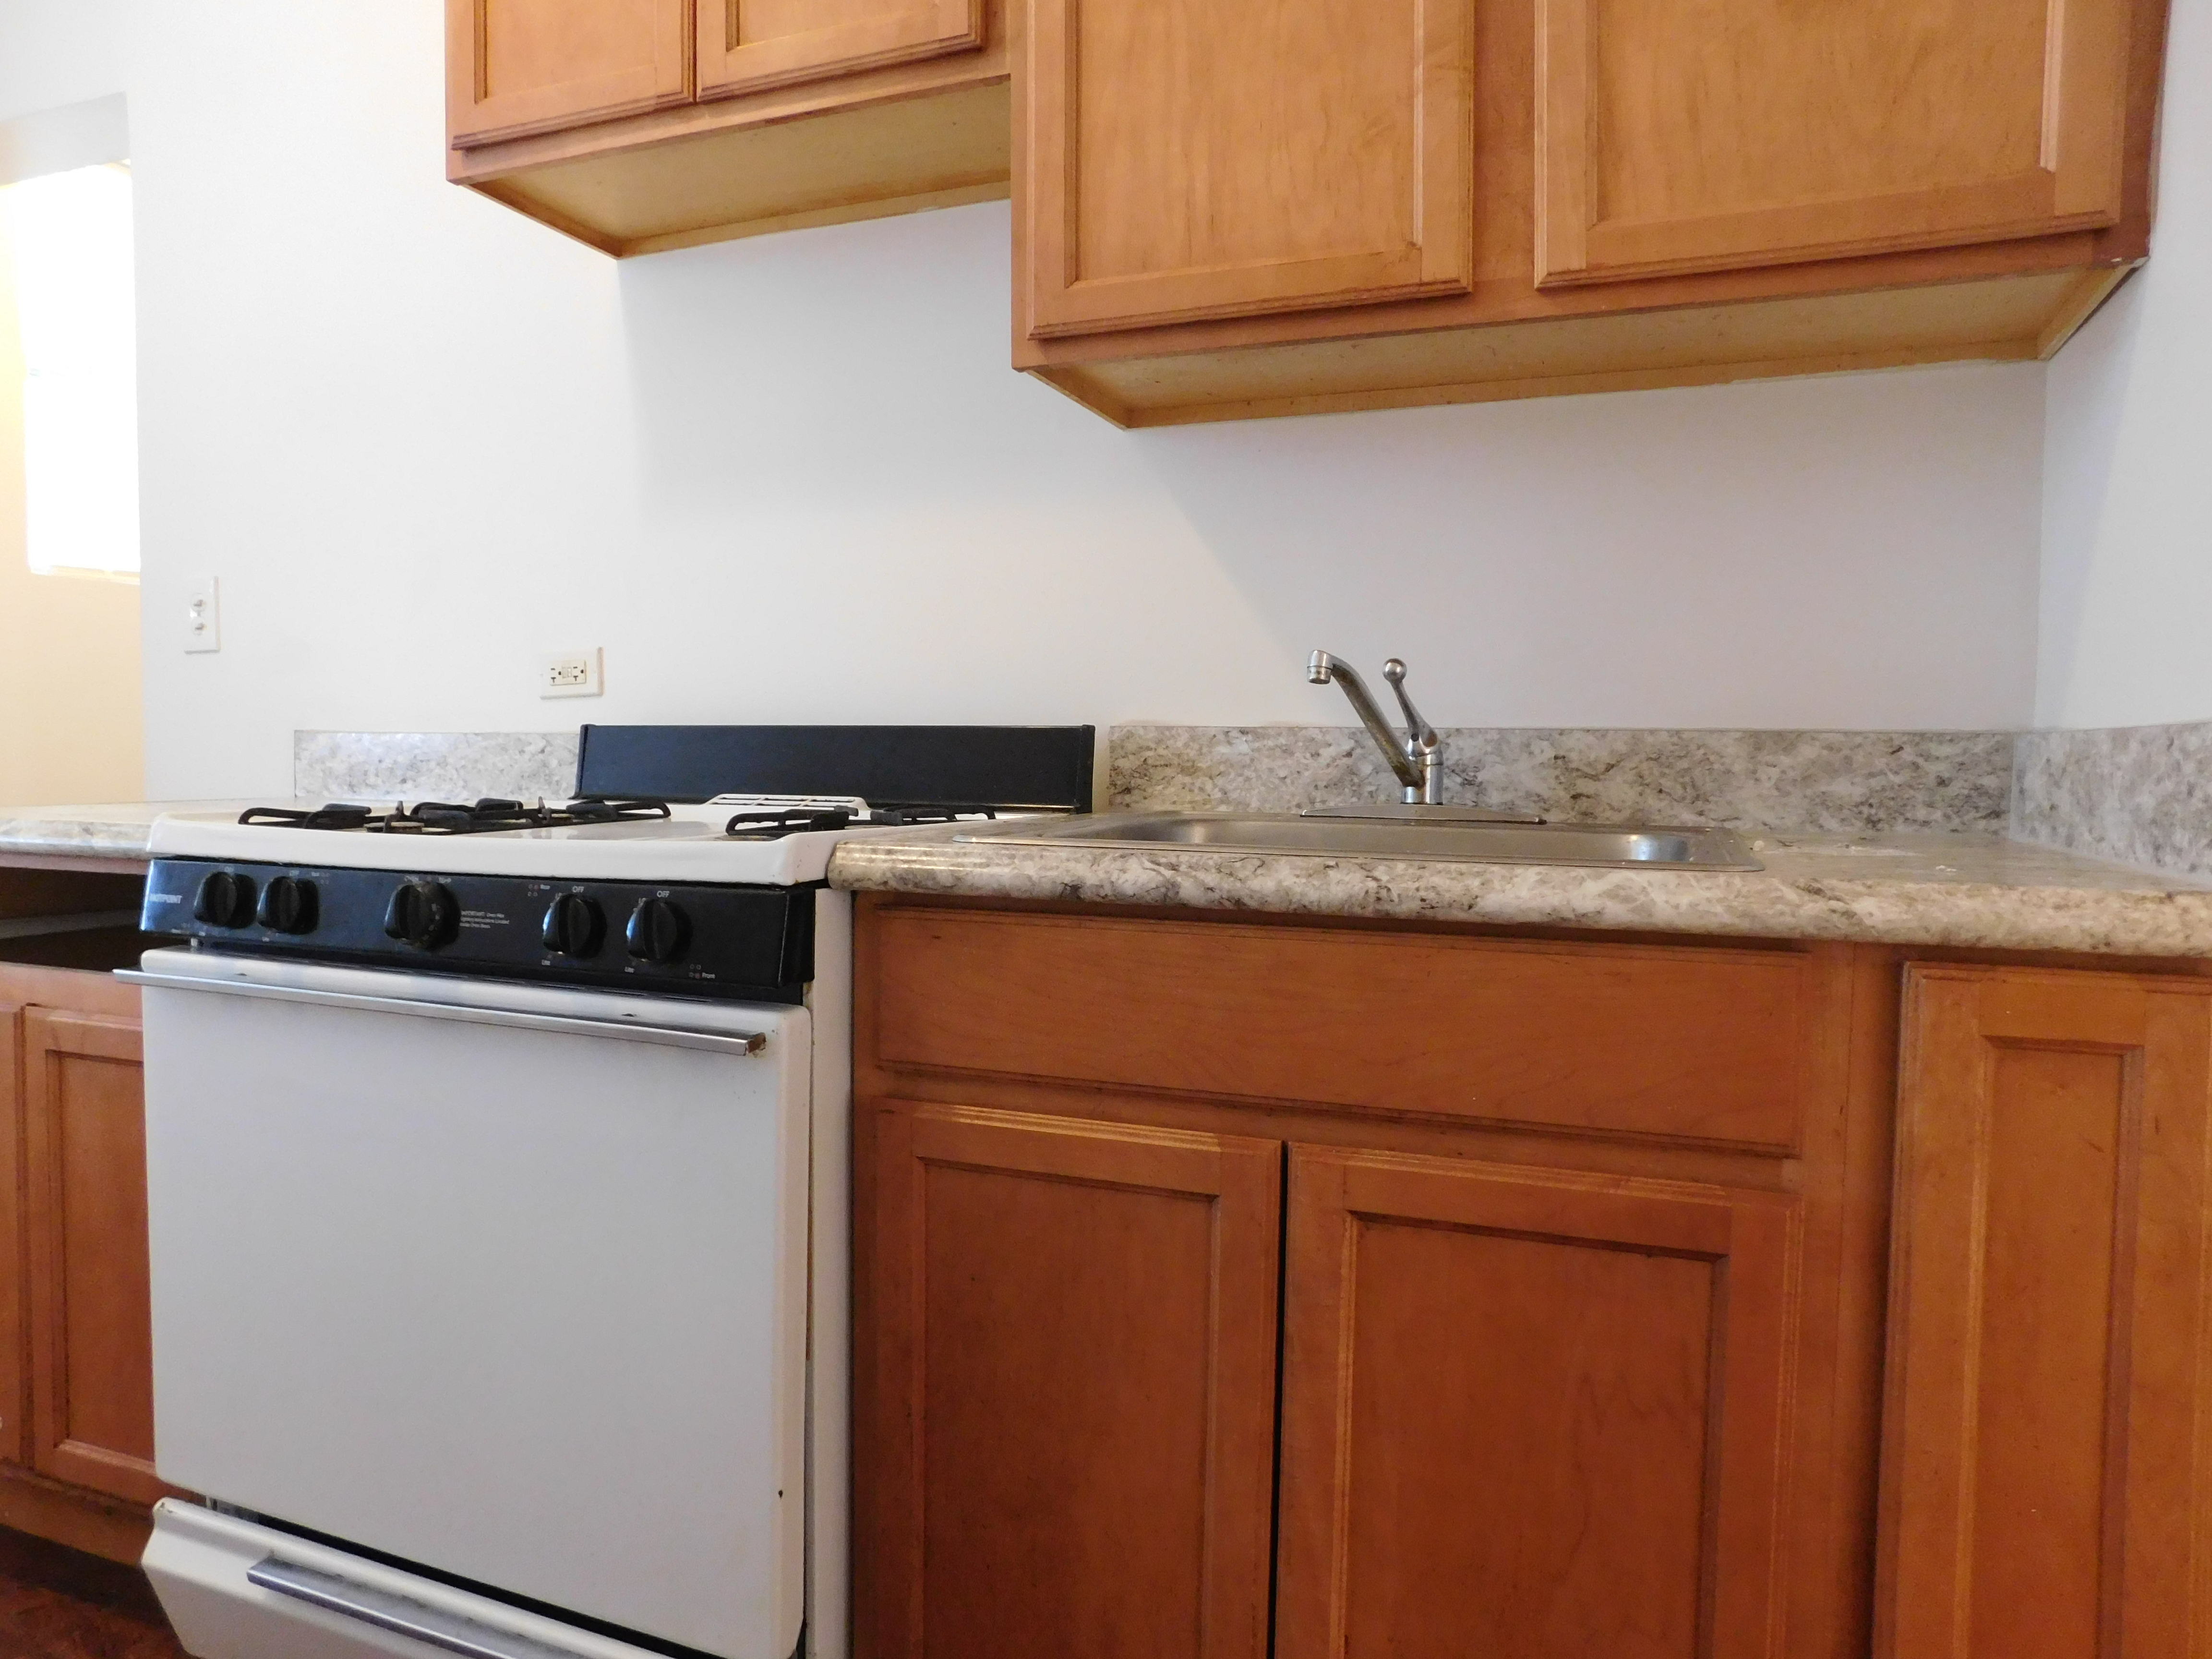 1BR Apartment for rent at 335 N Pine, Chicago, IL. 60651, Kitchen